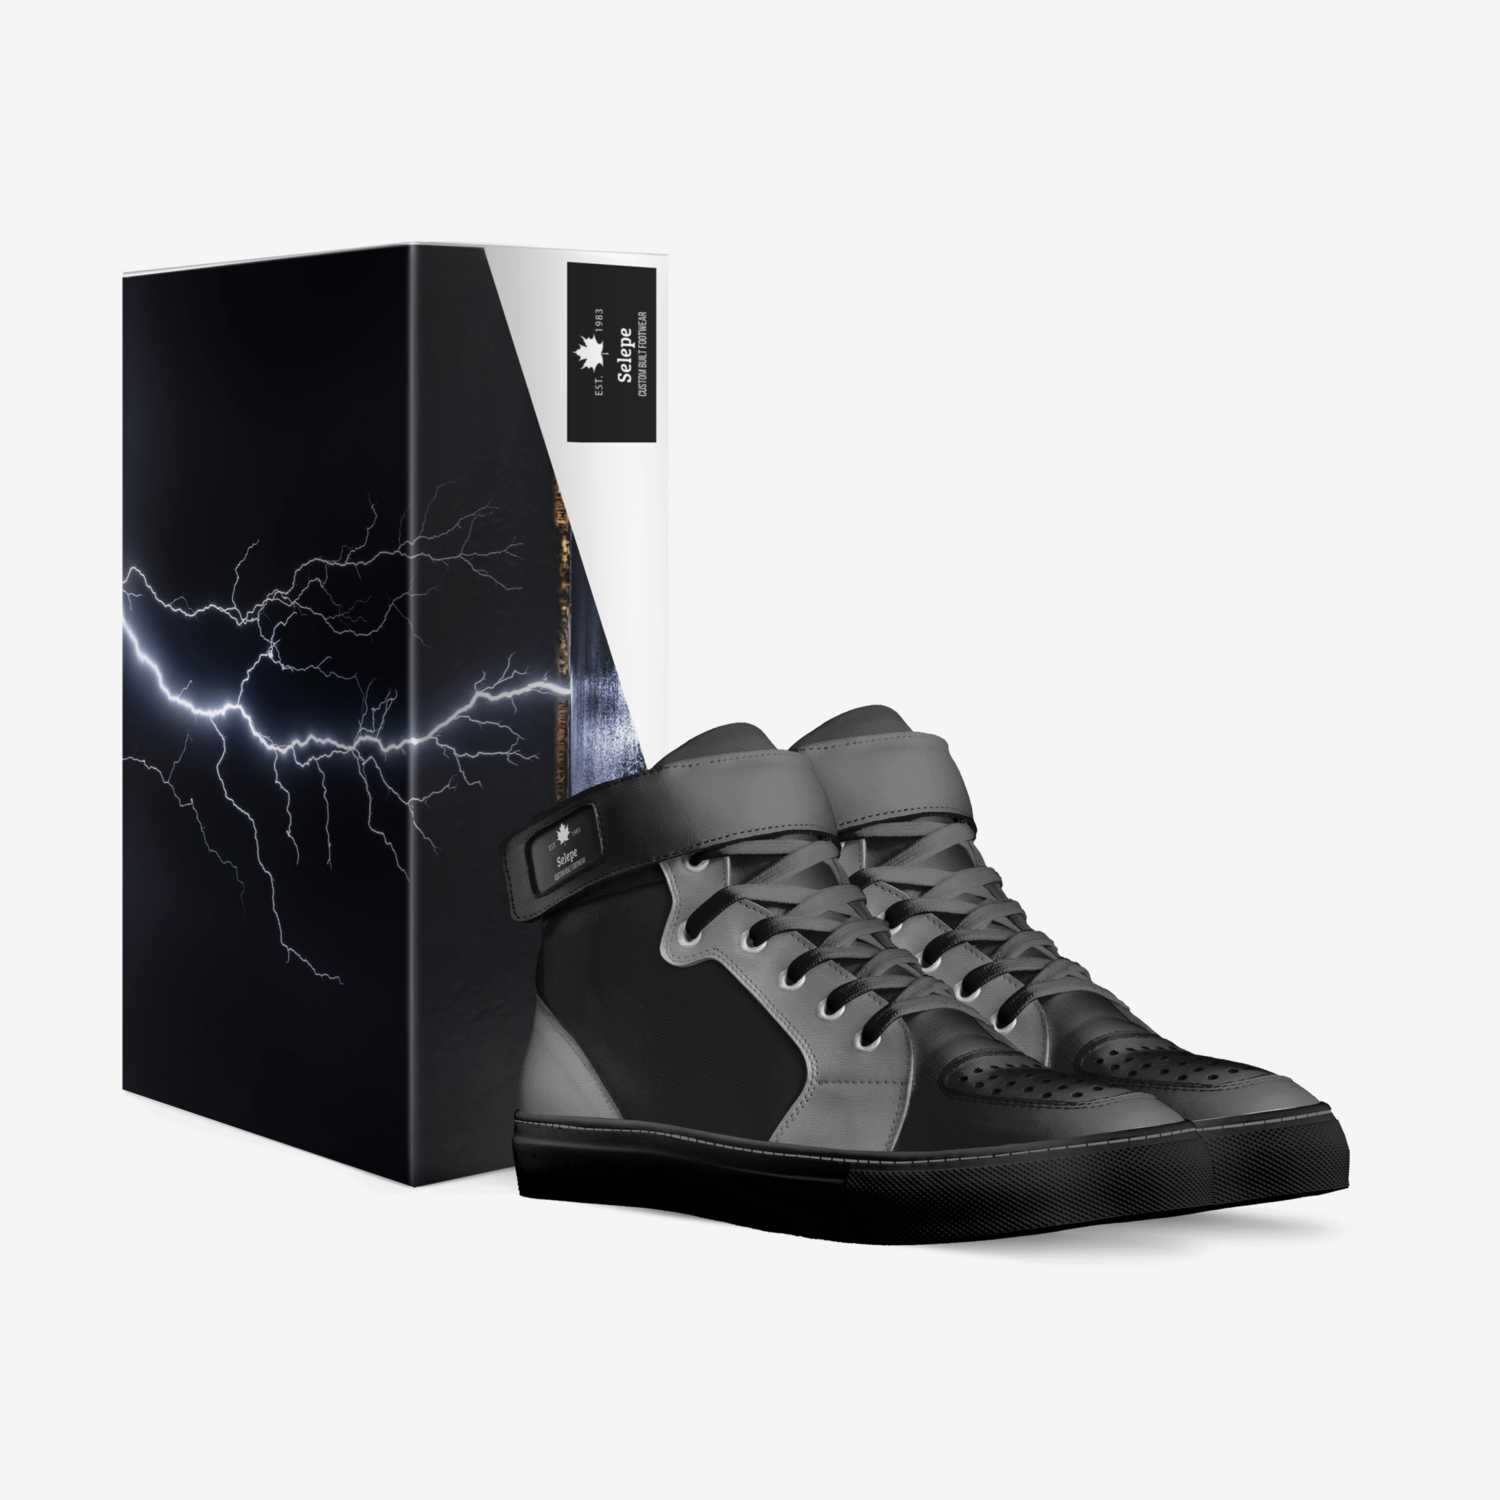 Eselpe custom made in Italy shoes by Steven Poindexter | Box view